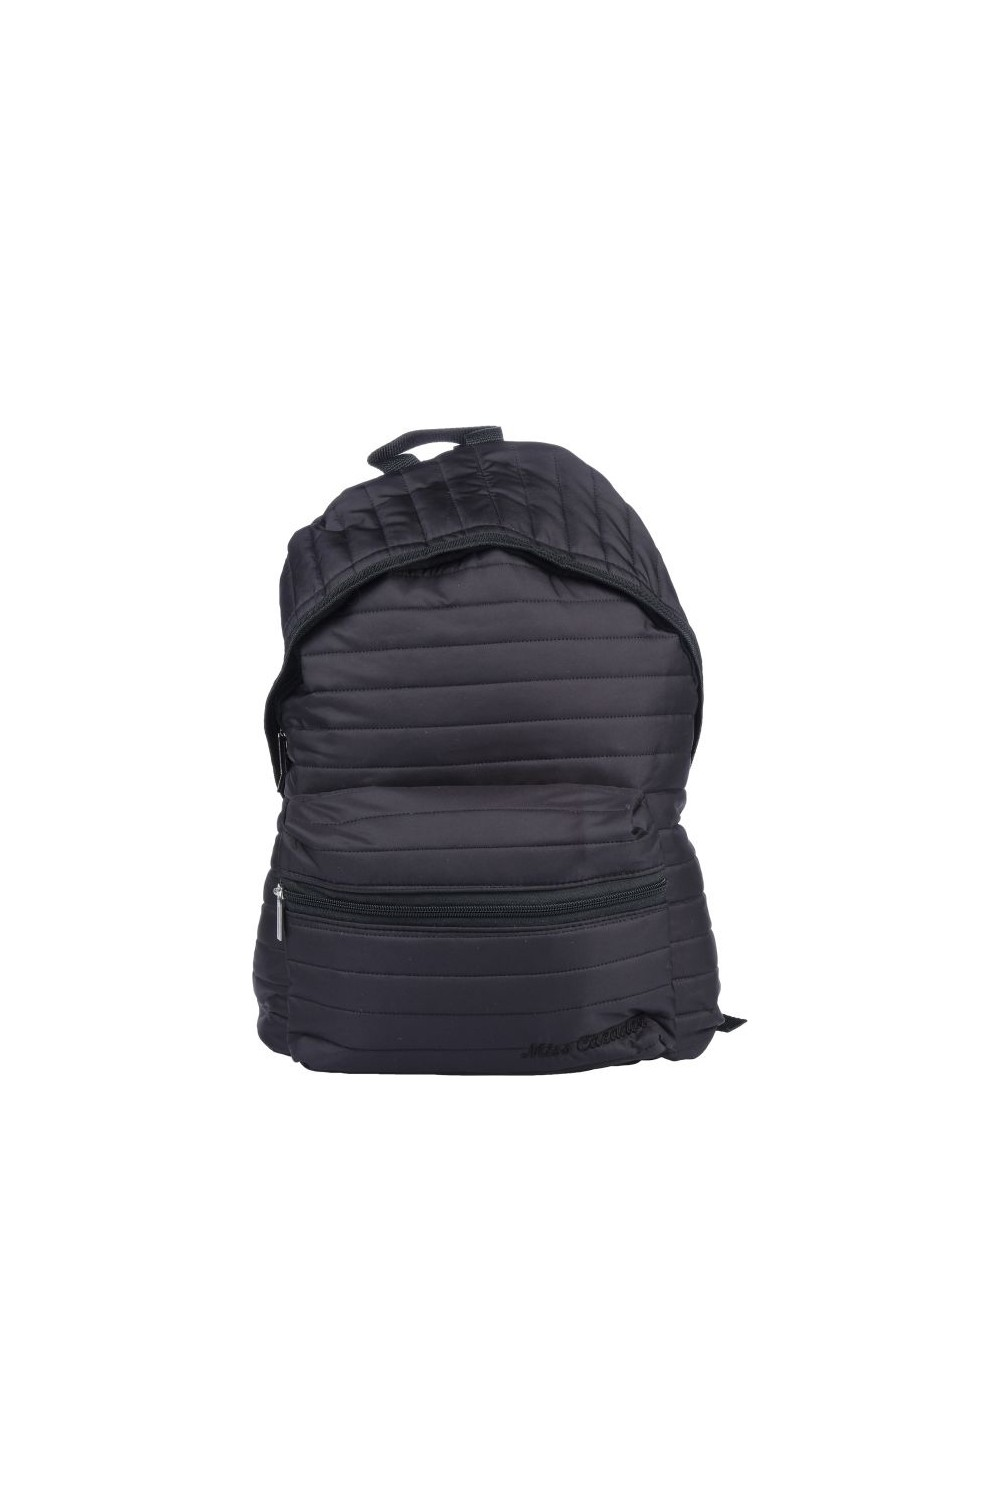 Cazador Women's Backpack